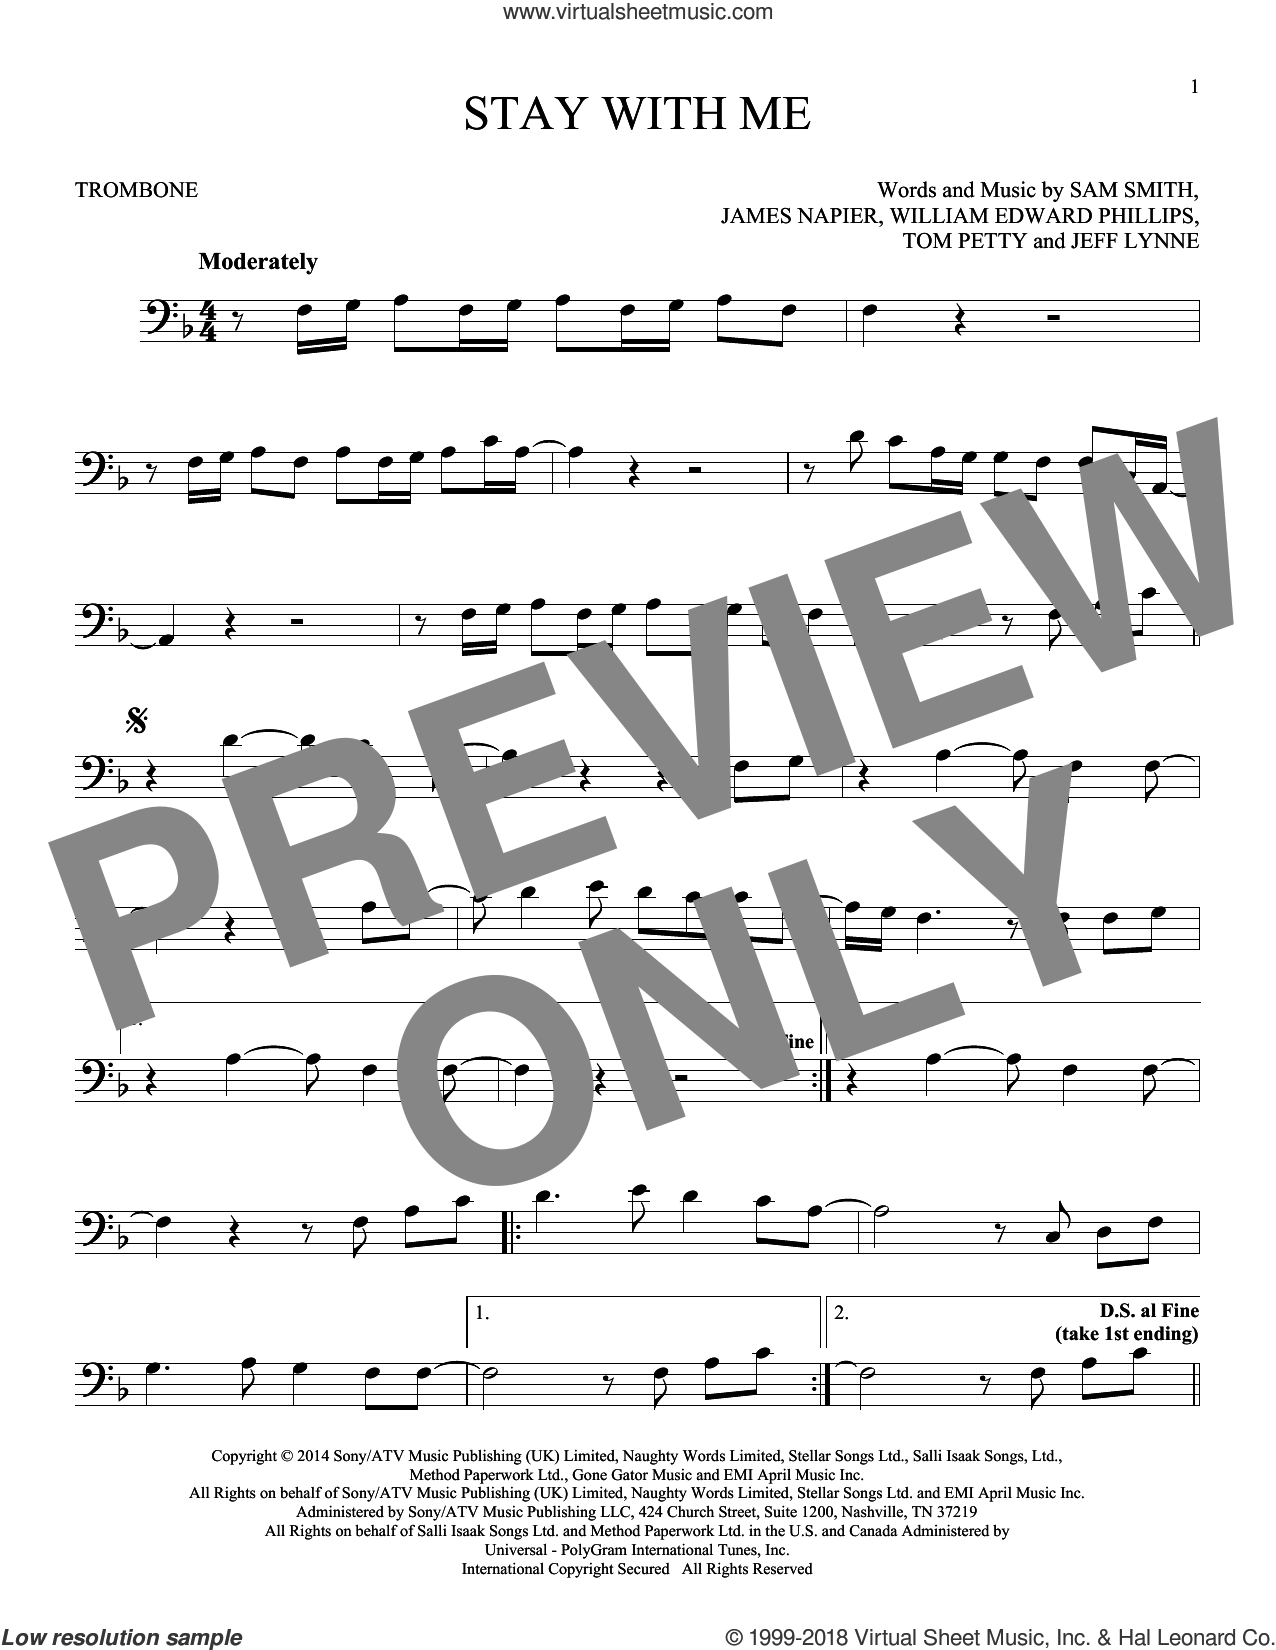 Stay With Me sheet music for trombone solo by William Edward Phillips, James Napier, Jeff Lynne, Sam Smith and Tom Petty. Score Image Preview.